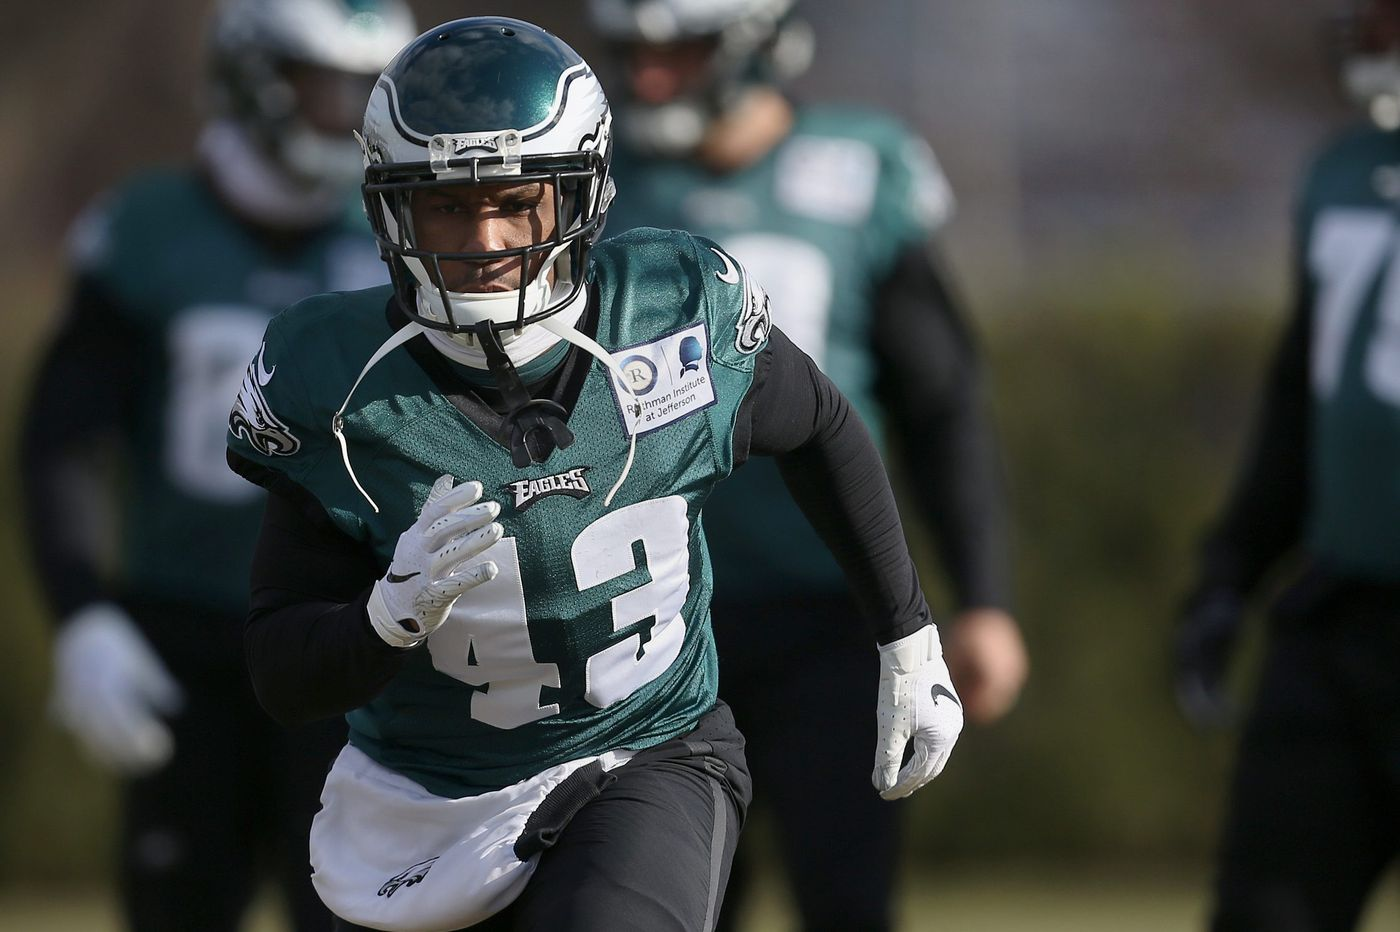 Eagles' Darren Sproles says he is no longer hamstrung, and will play Monday night against Washington